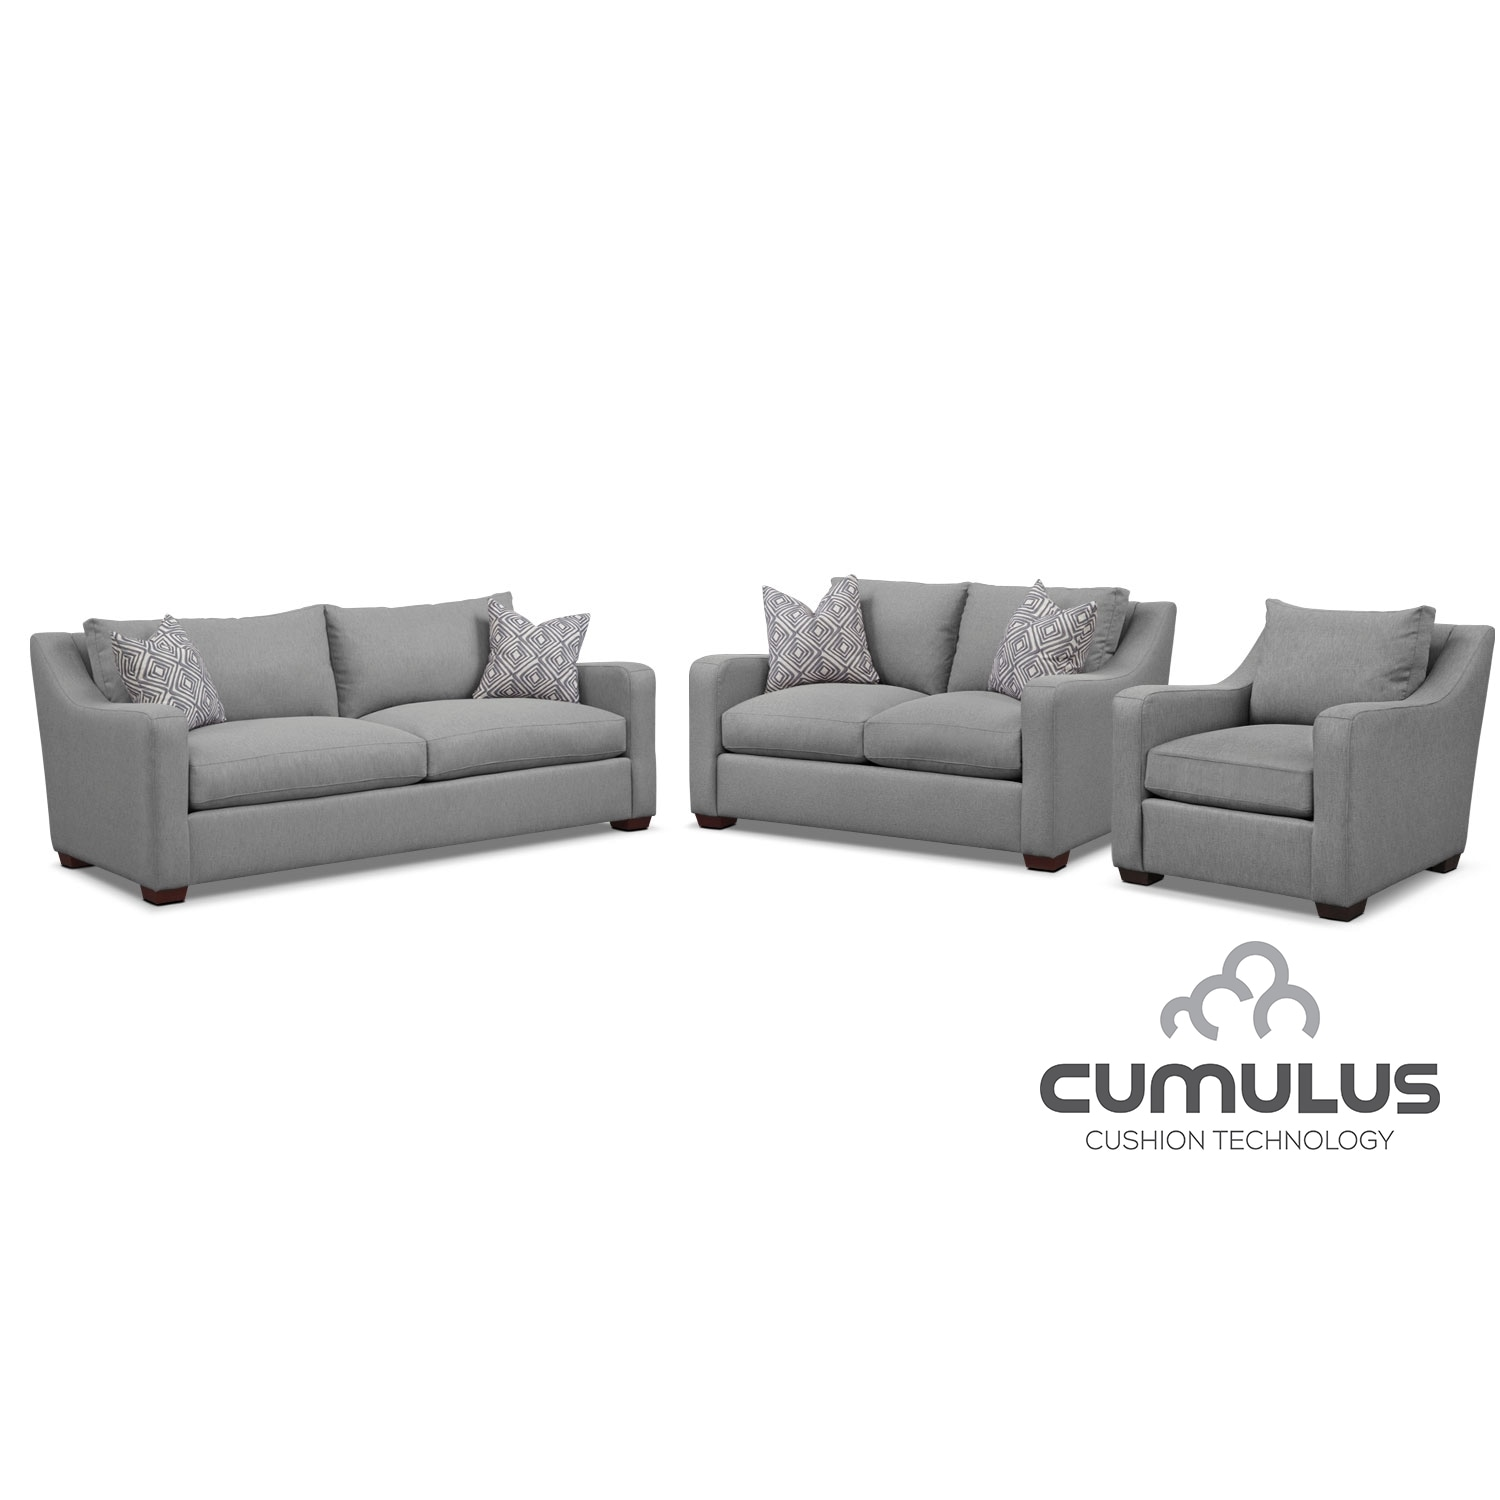 Living Room Furniture - Jules Cumulus Sofa, Loveseat, and Chair Set- Gray